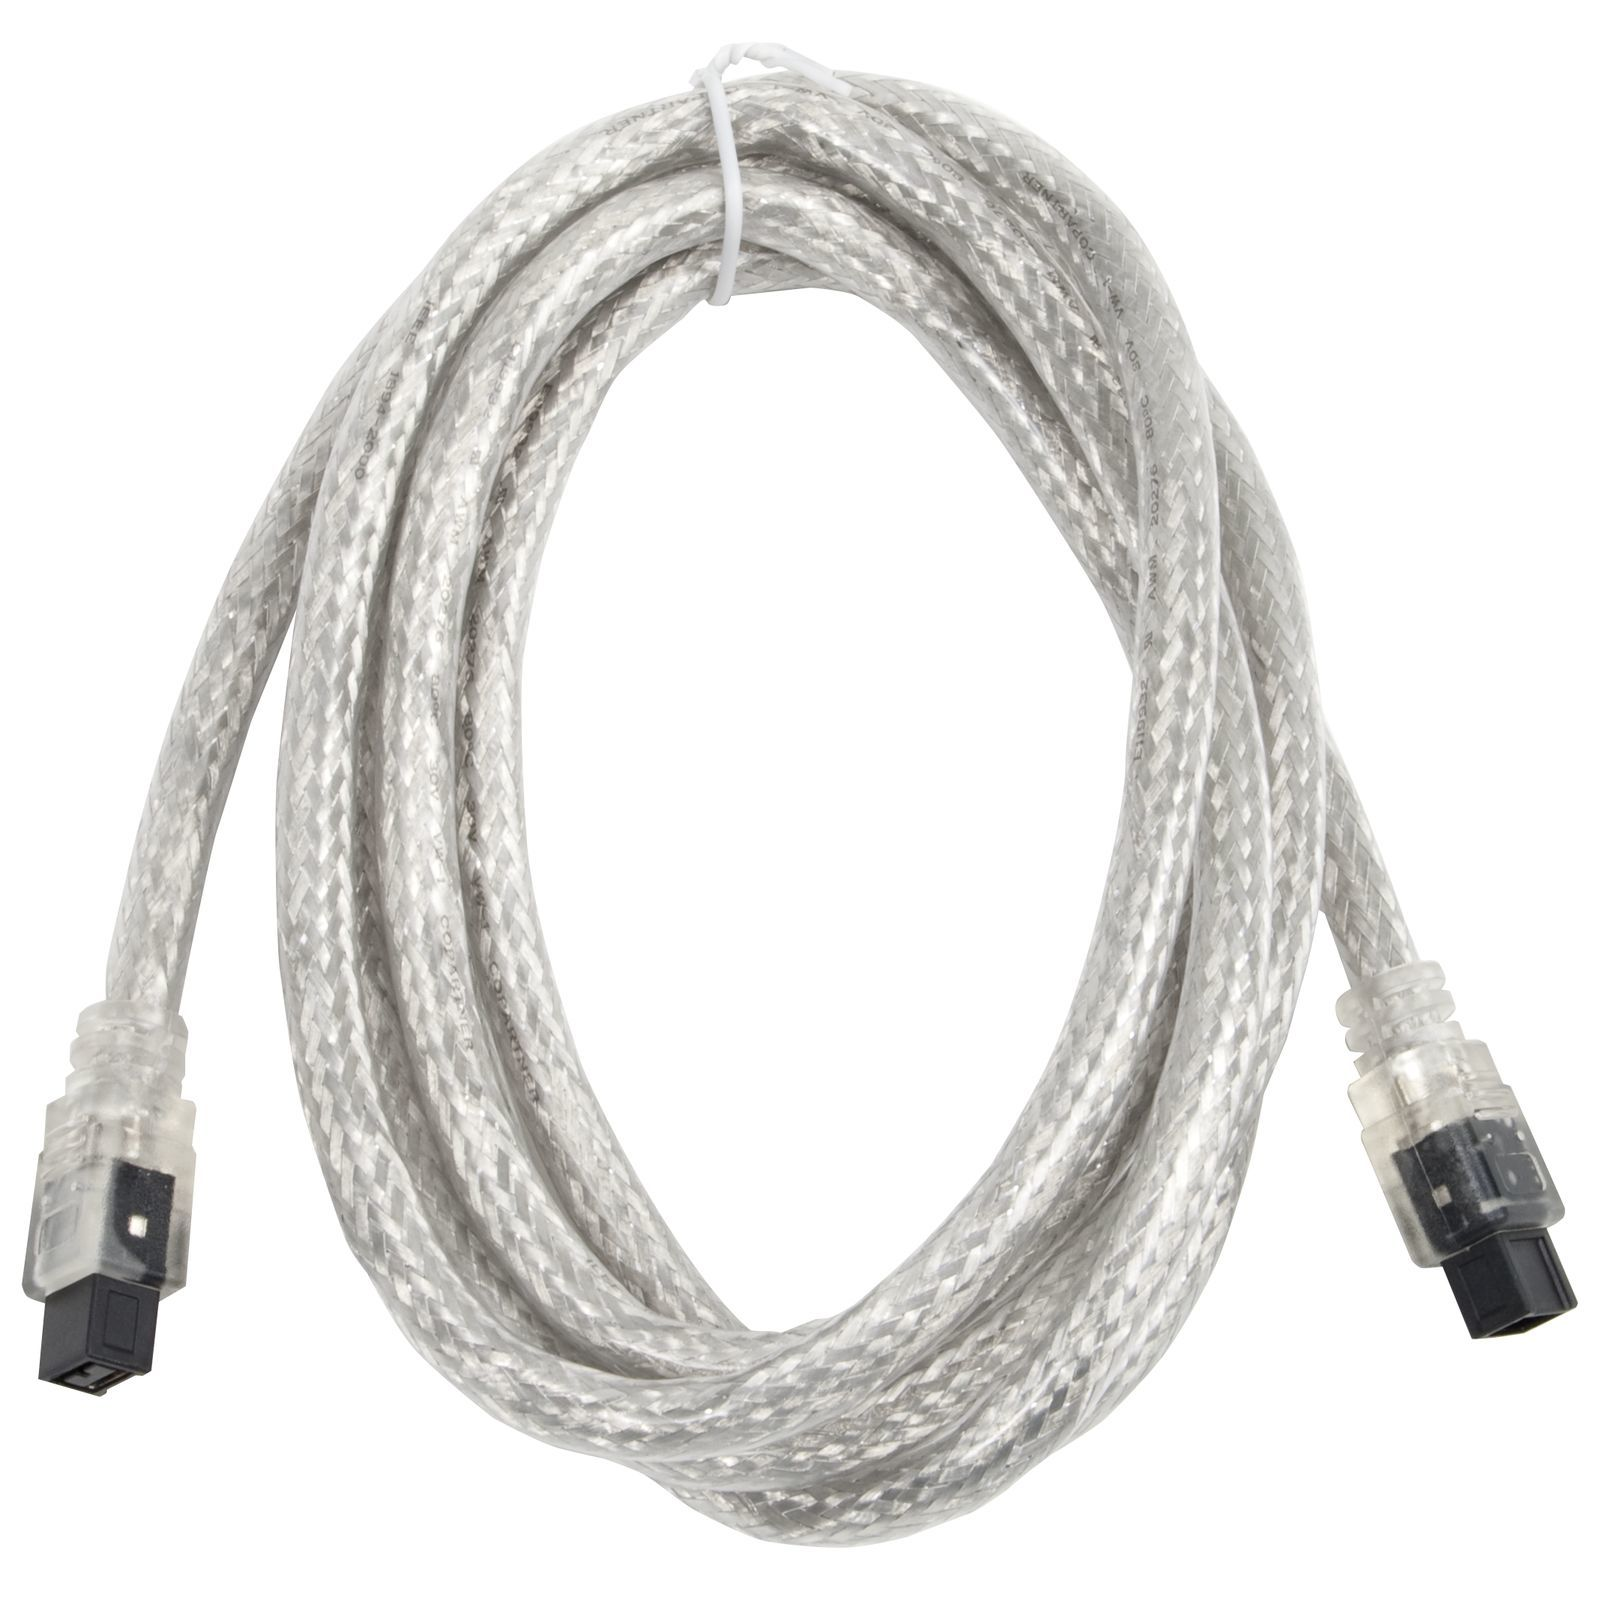 DELOCK FireWire-Cable 9P/9P FW800 > FW800, 2m Produktbillede